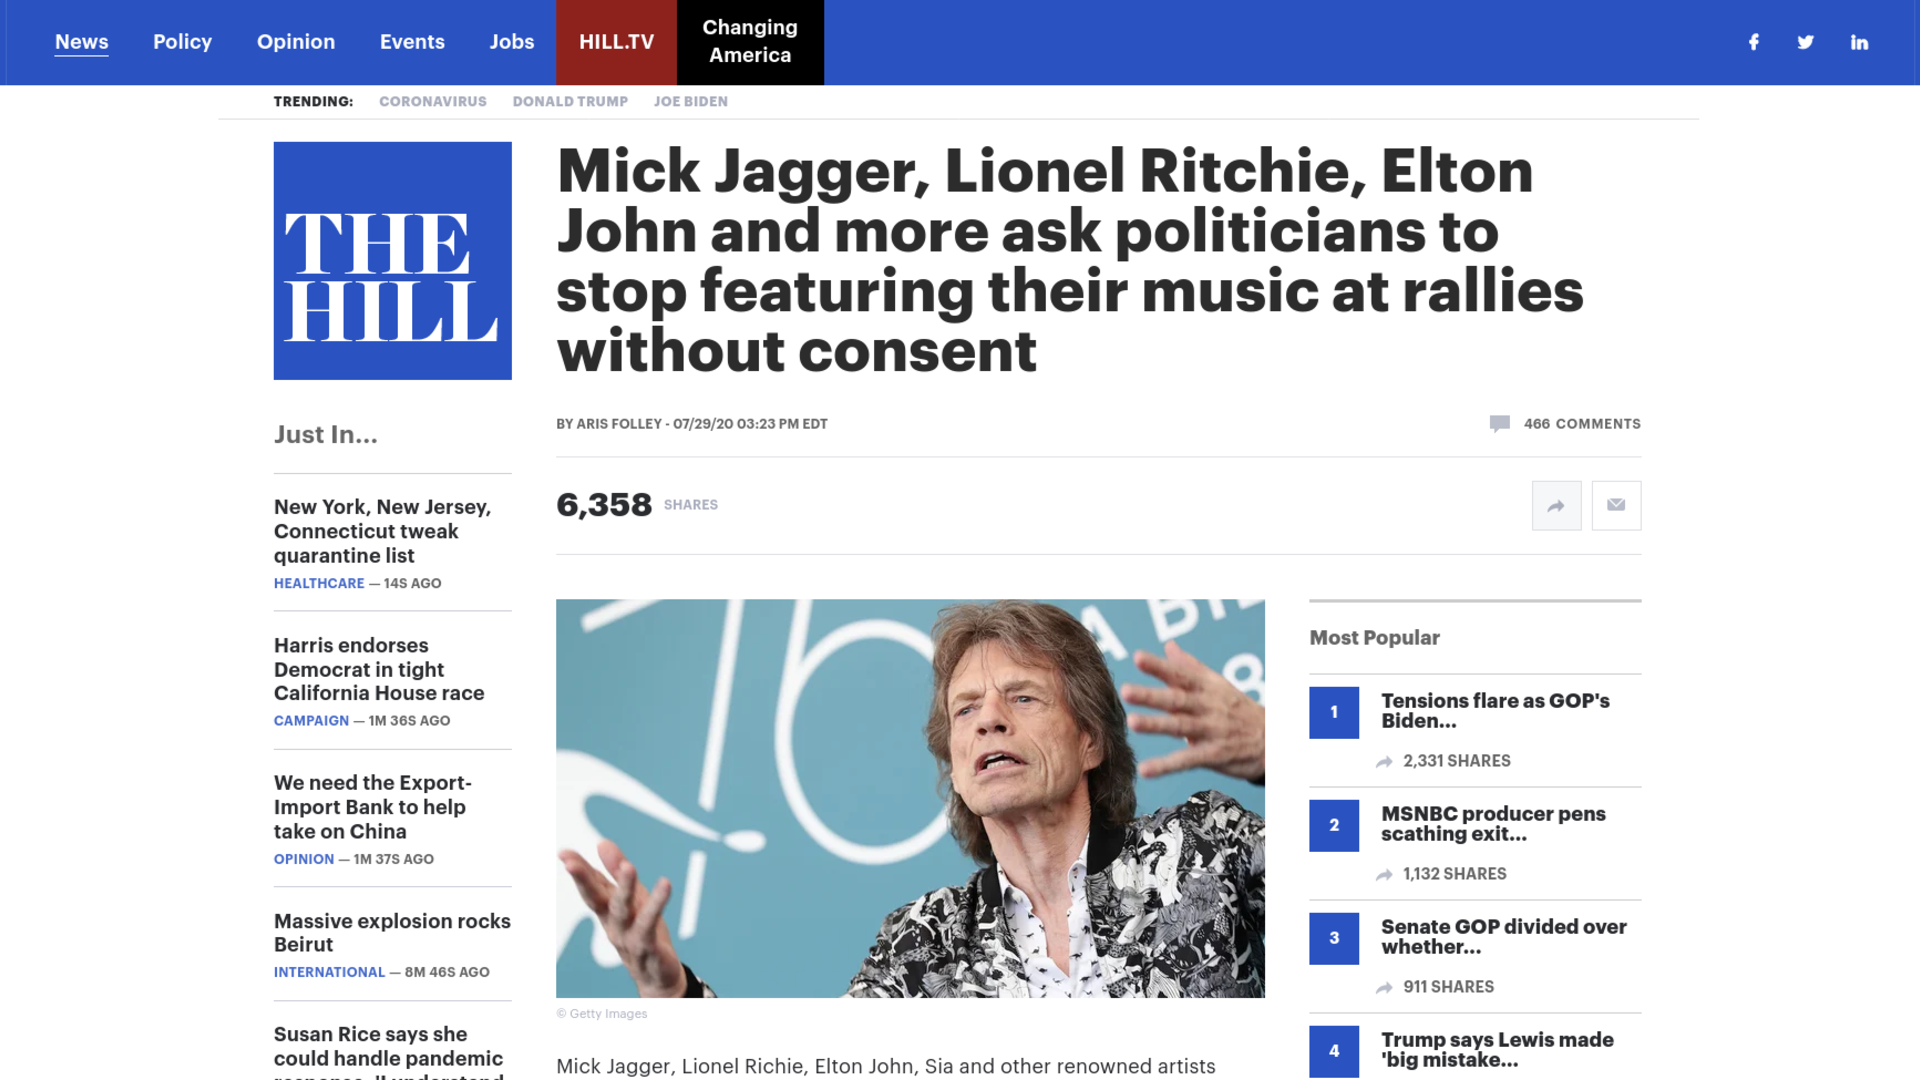 Fairness Rocks News Mick Jagger, Lionel Ritchie, Elton John and more ask politicians to stop featuring their music at rallies without consent